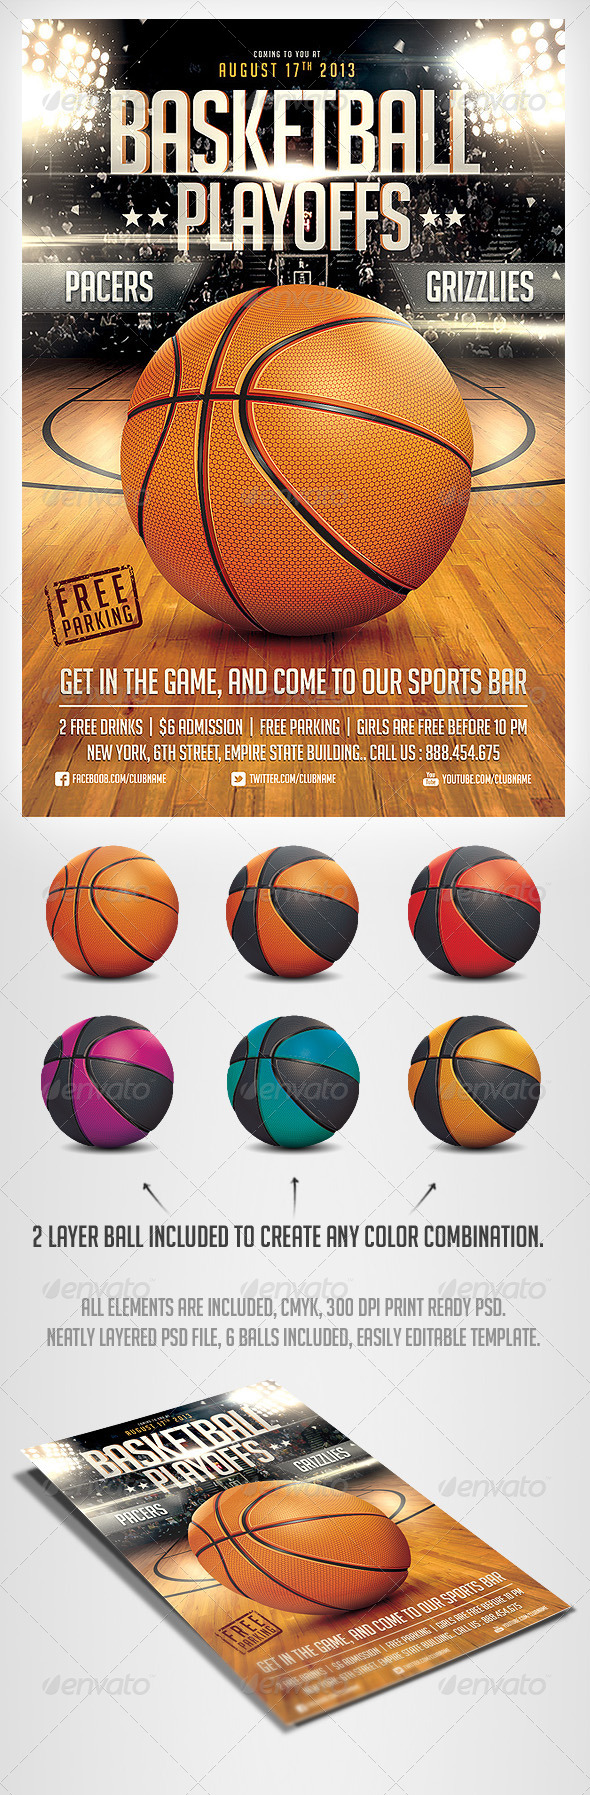 basketball game flyer psd template sports events my flyer